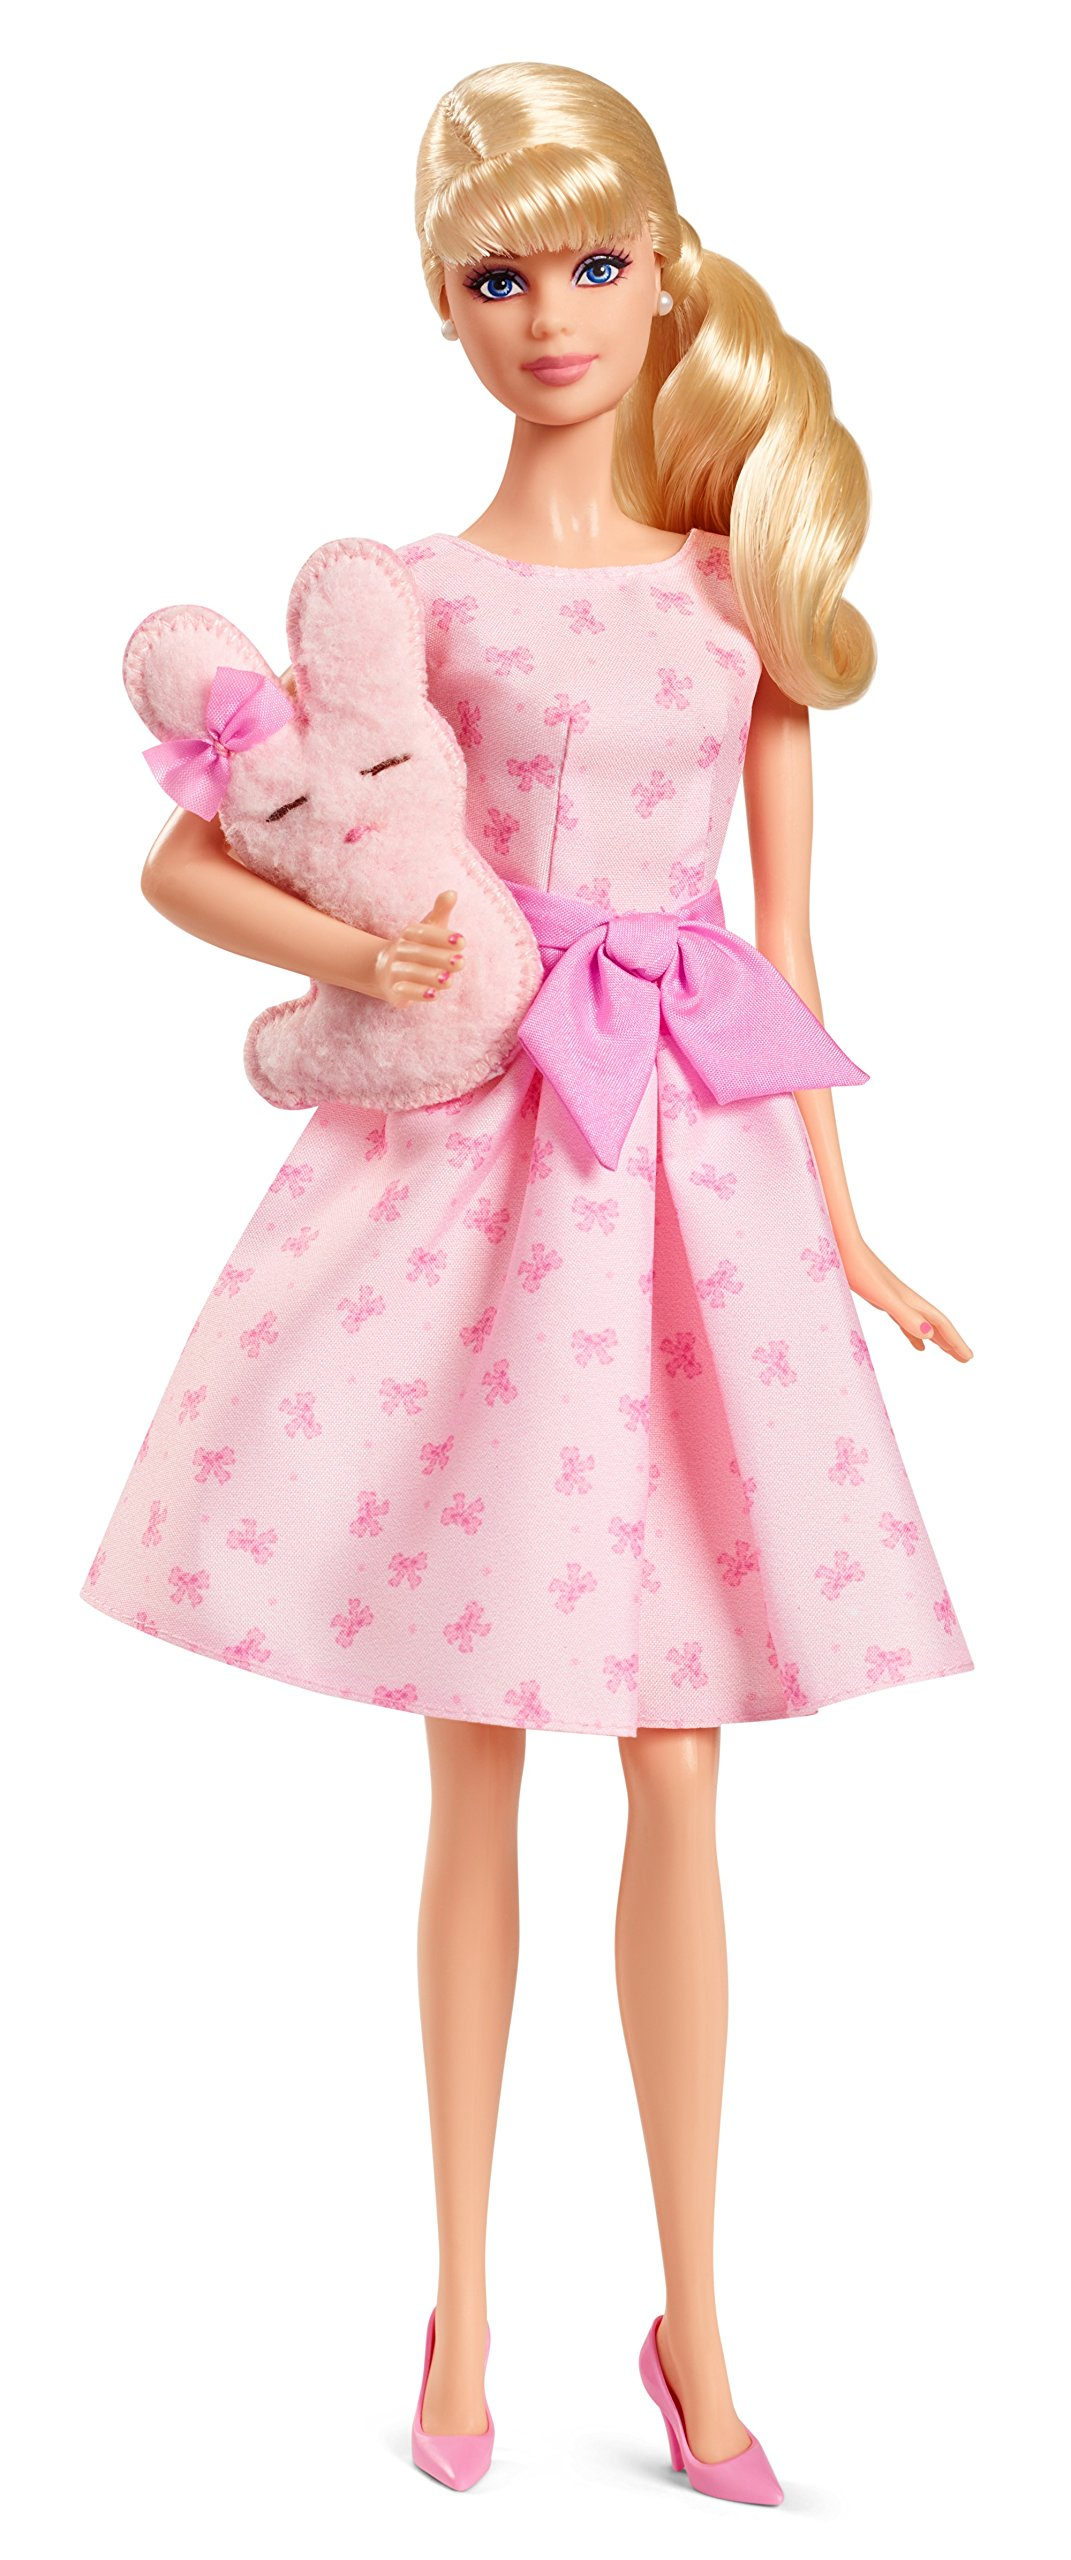 Barbie Collector It's A Girl with Stuffed Bunny and Doll Stand